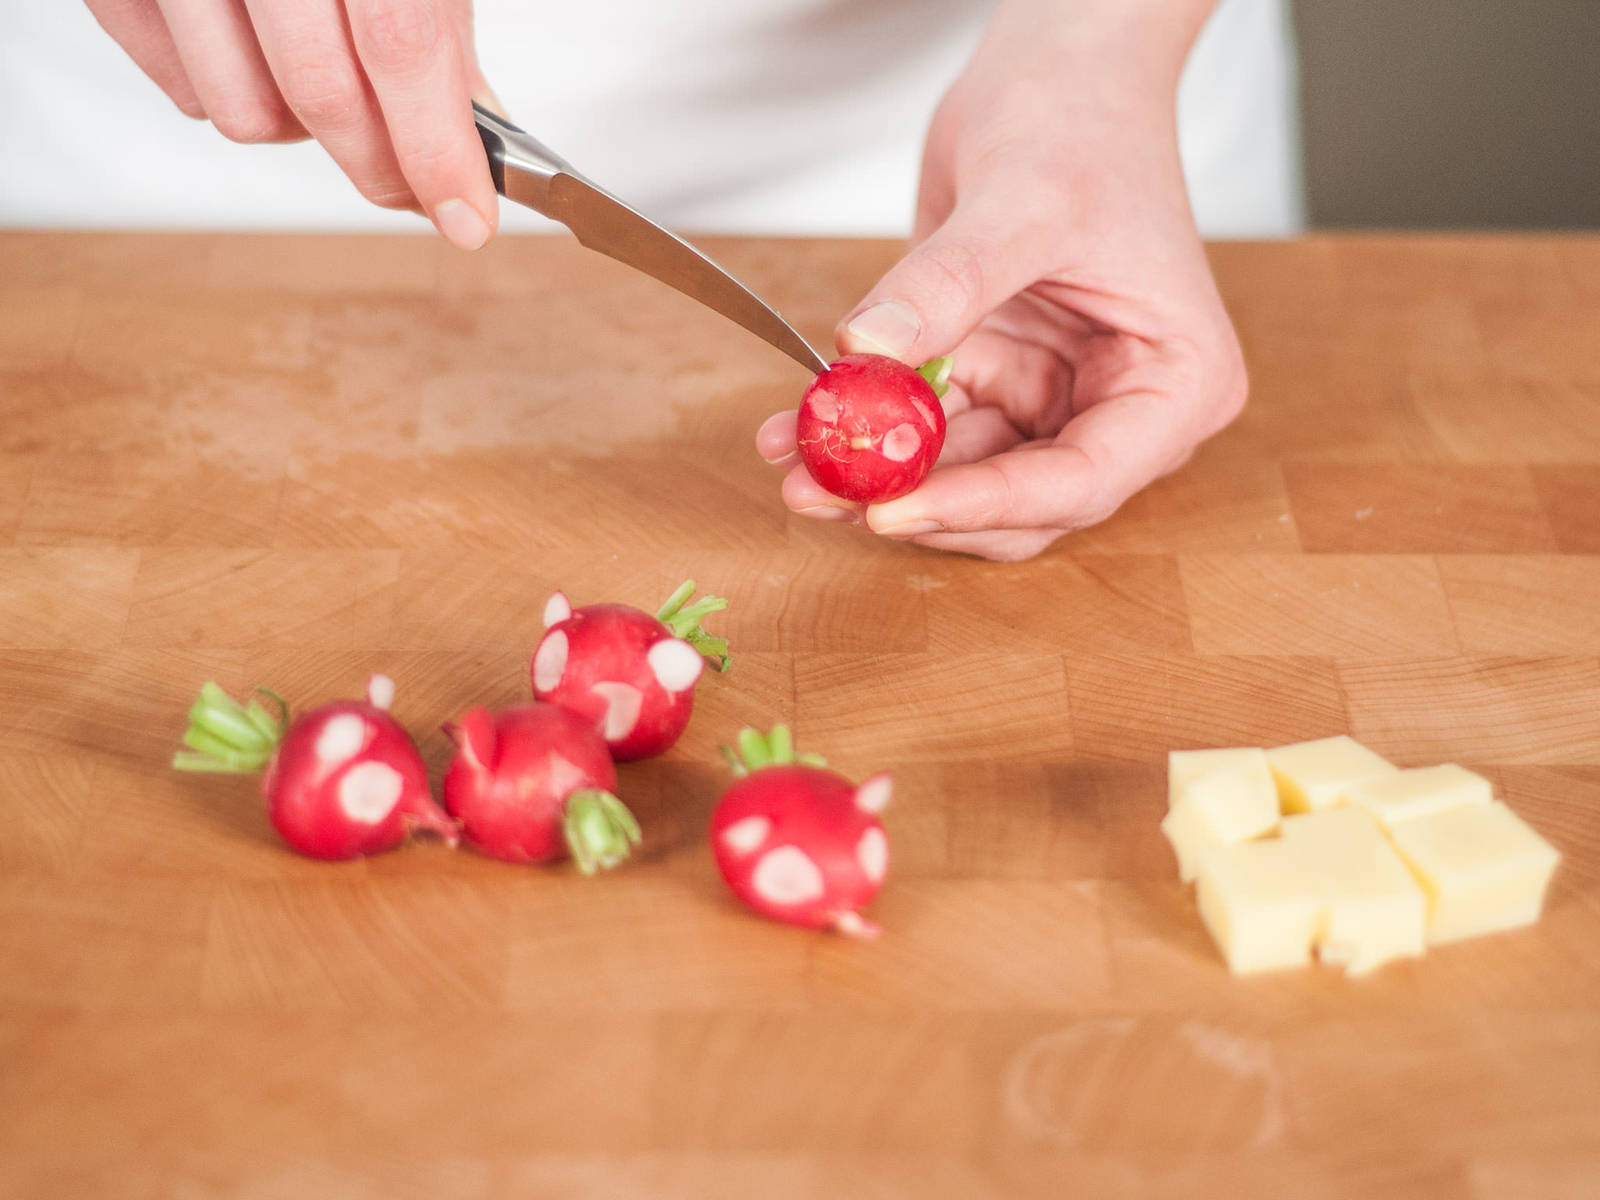 Cube cheese. Clean red radishes without removing the stem to create mice. Use a small sharp knife to cut out eyes. Make small slits for the ears and place the small radish rounds left over from cutting the eyes into the slits.